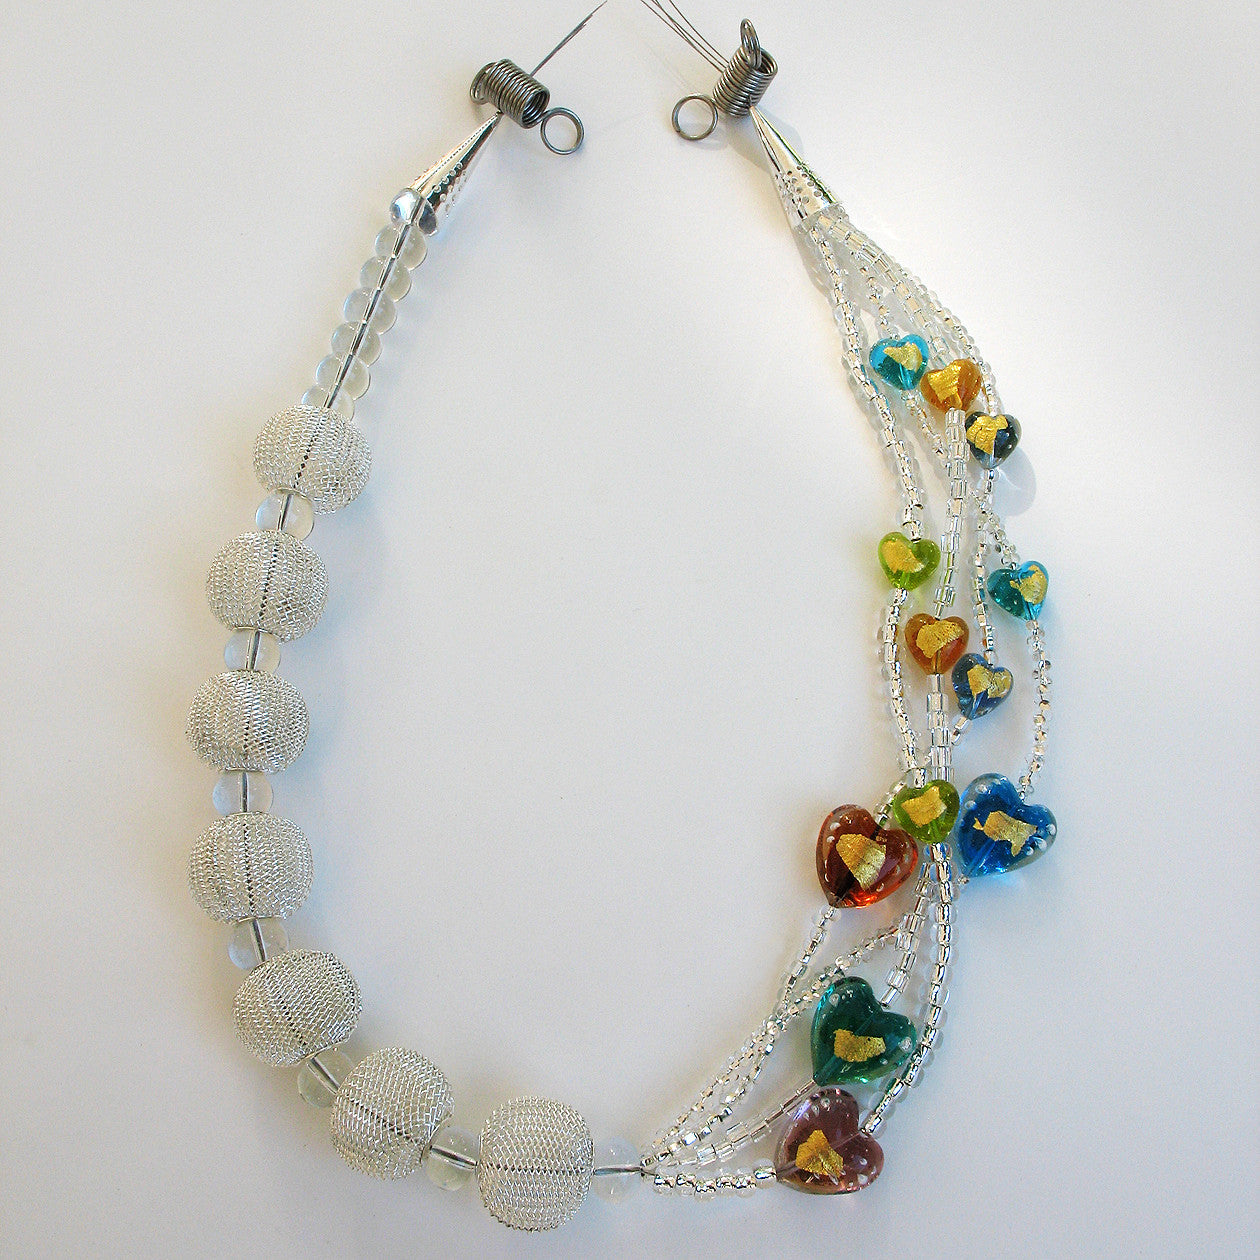 Hestia - Silver Mesh and Murano Heart Necklace